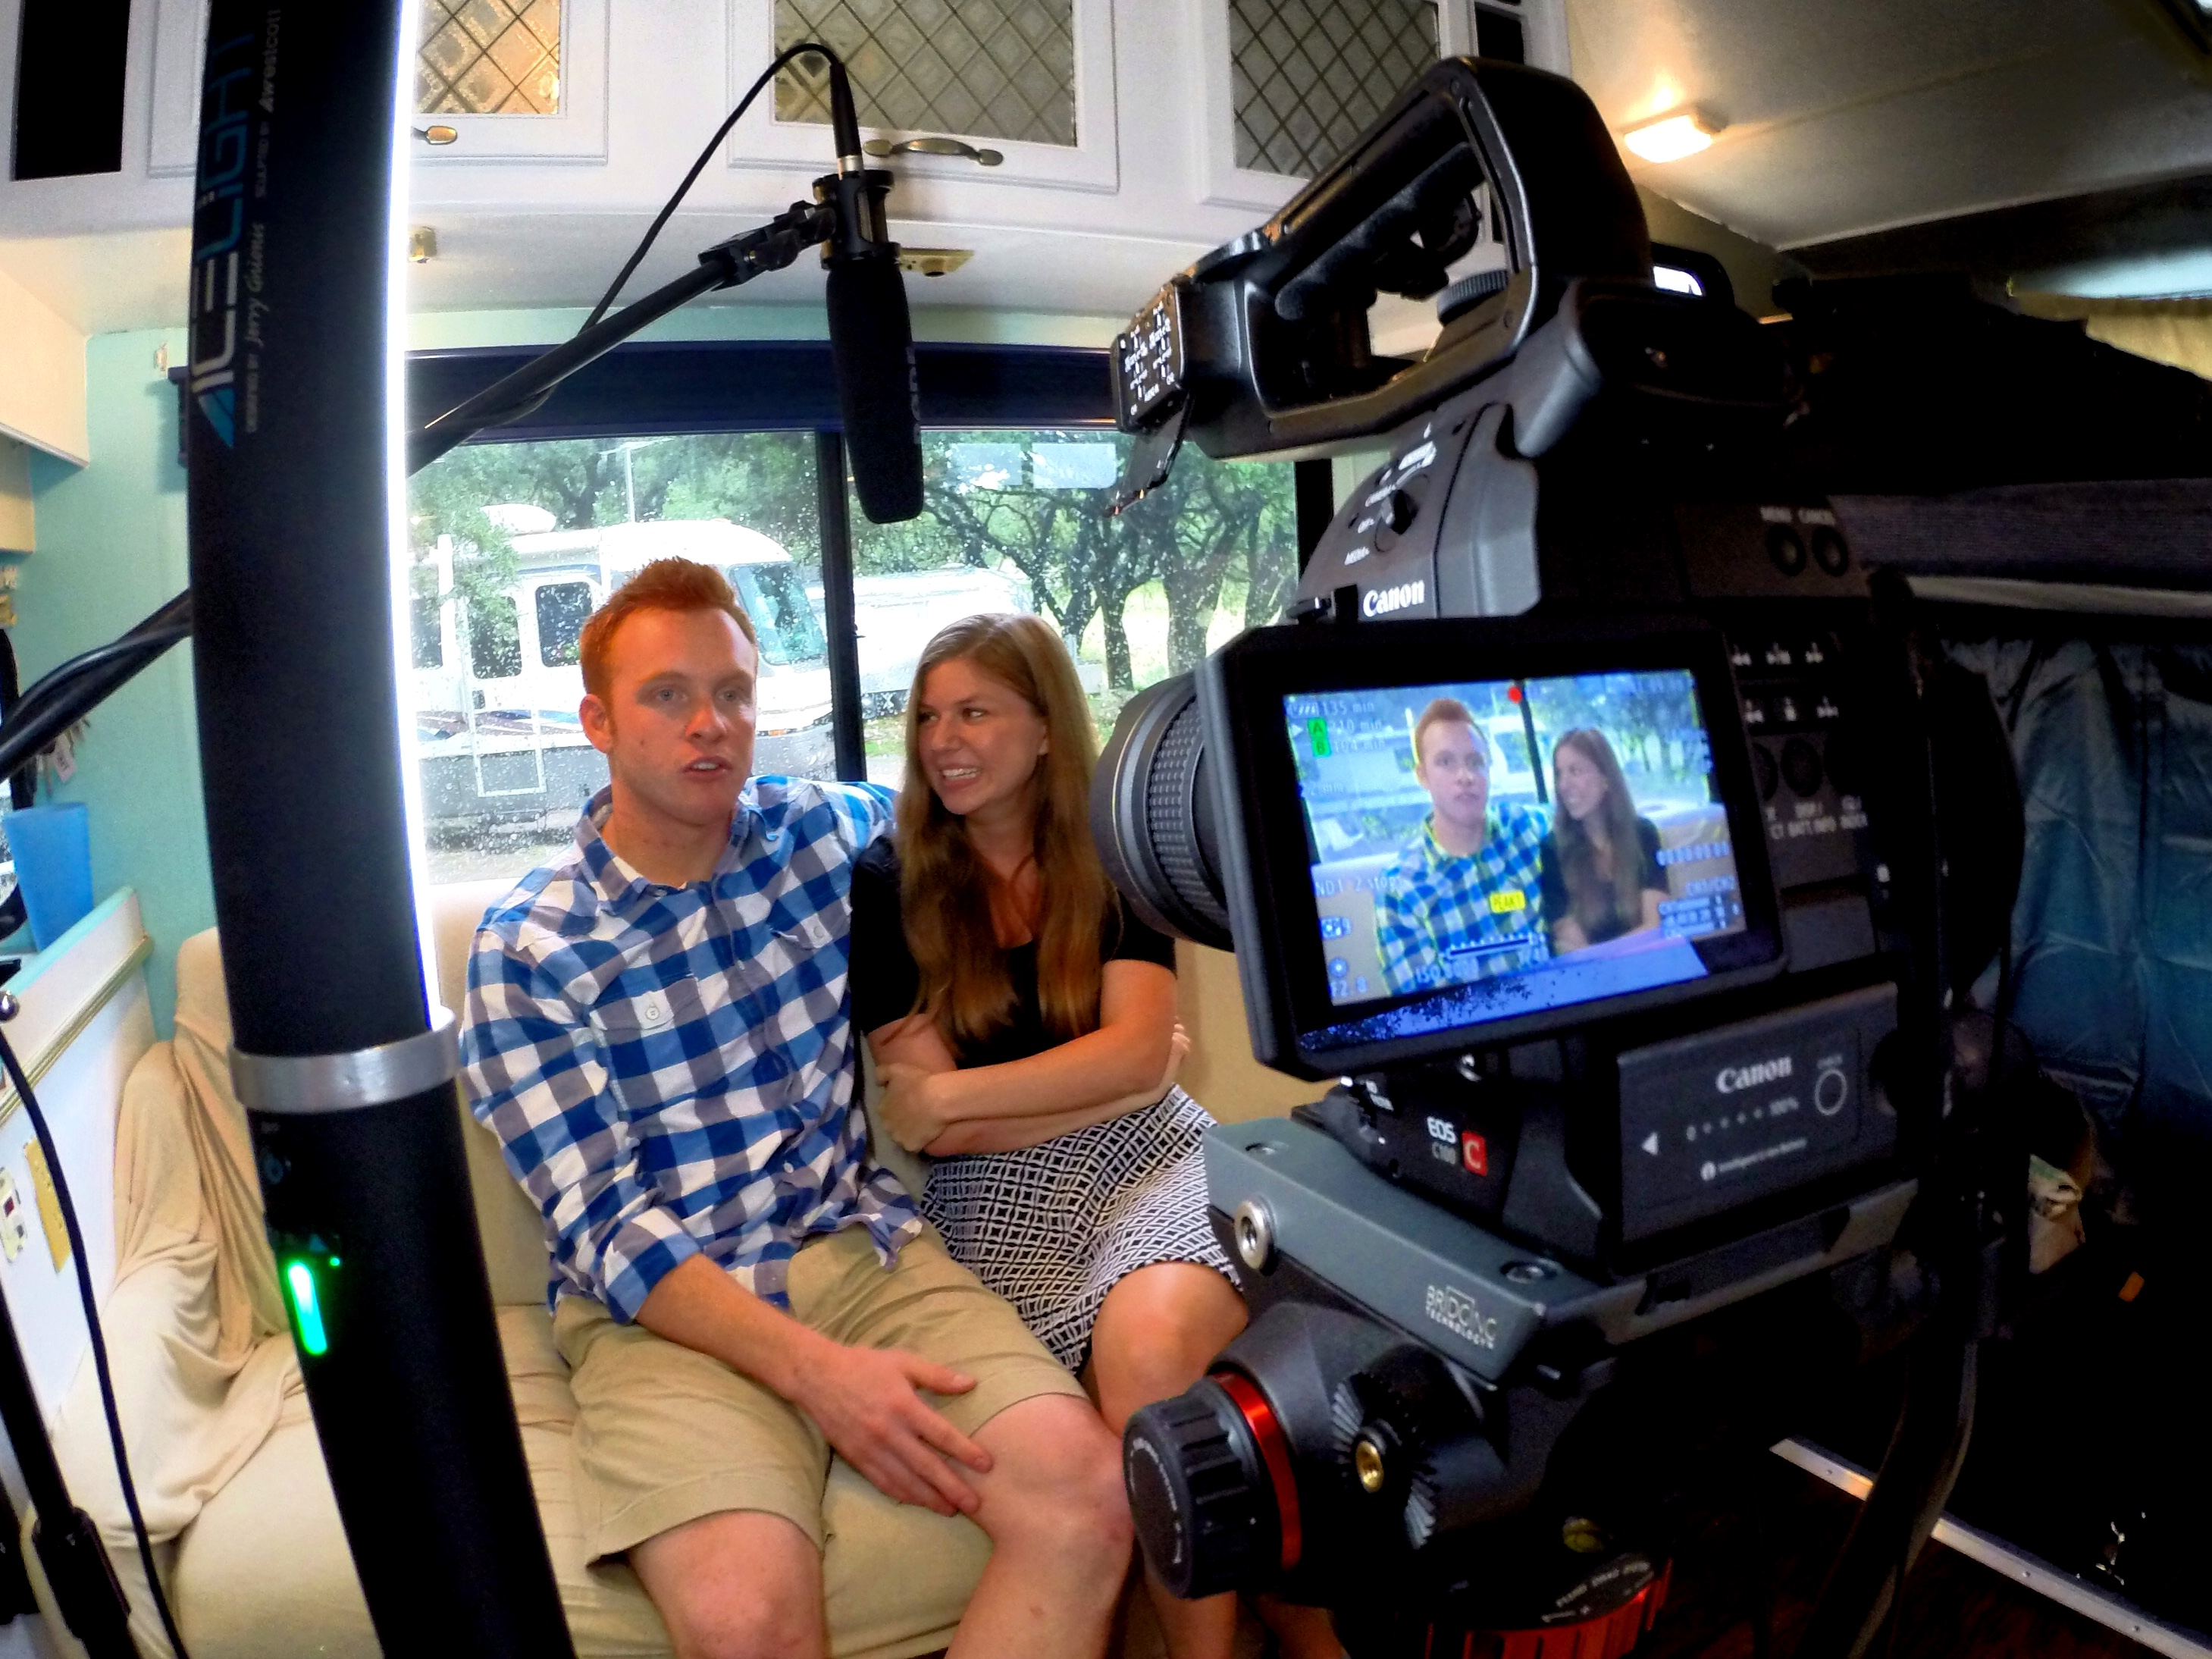 Heath and Alyssa on couch of RV with camera filming them.